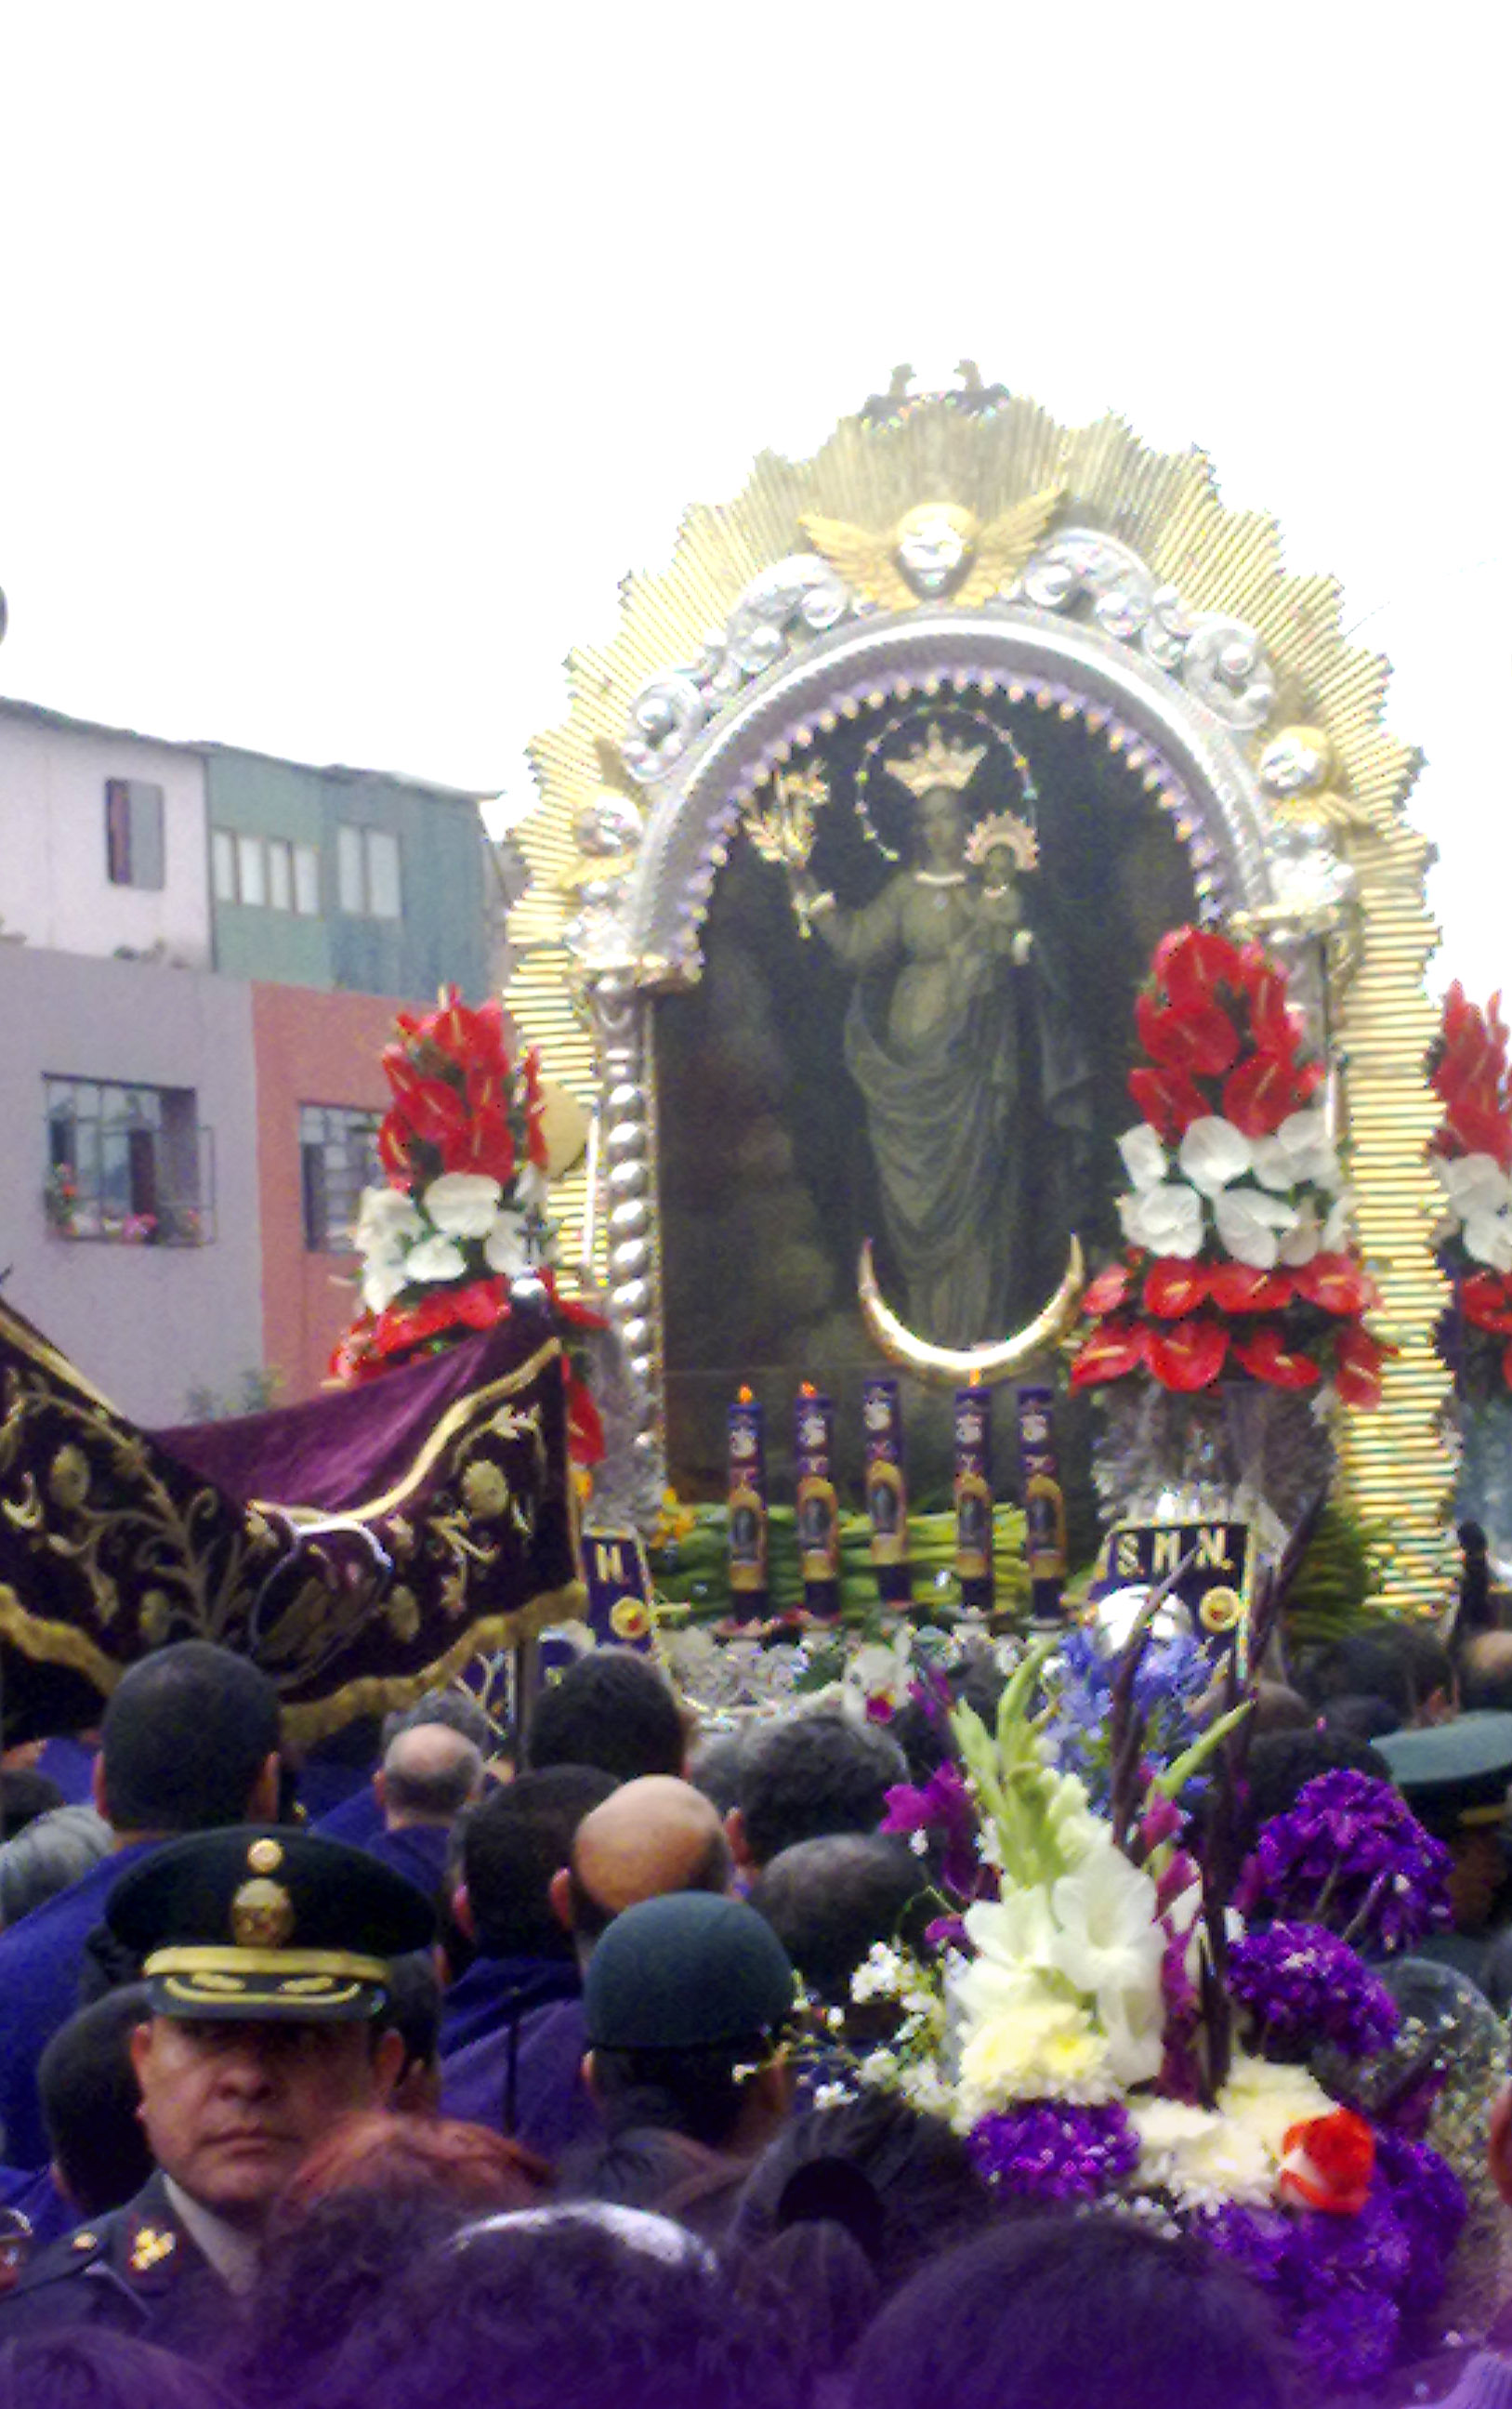 http://upload.wikimedia.org/wikipedia/commons/6/65/Se%C3%B1or_de_los_Milagros_(Virgen_de_la_Nube).jpg